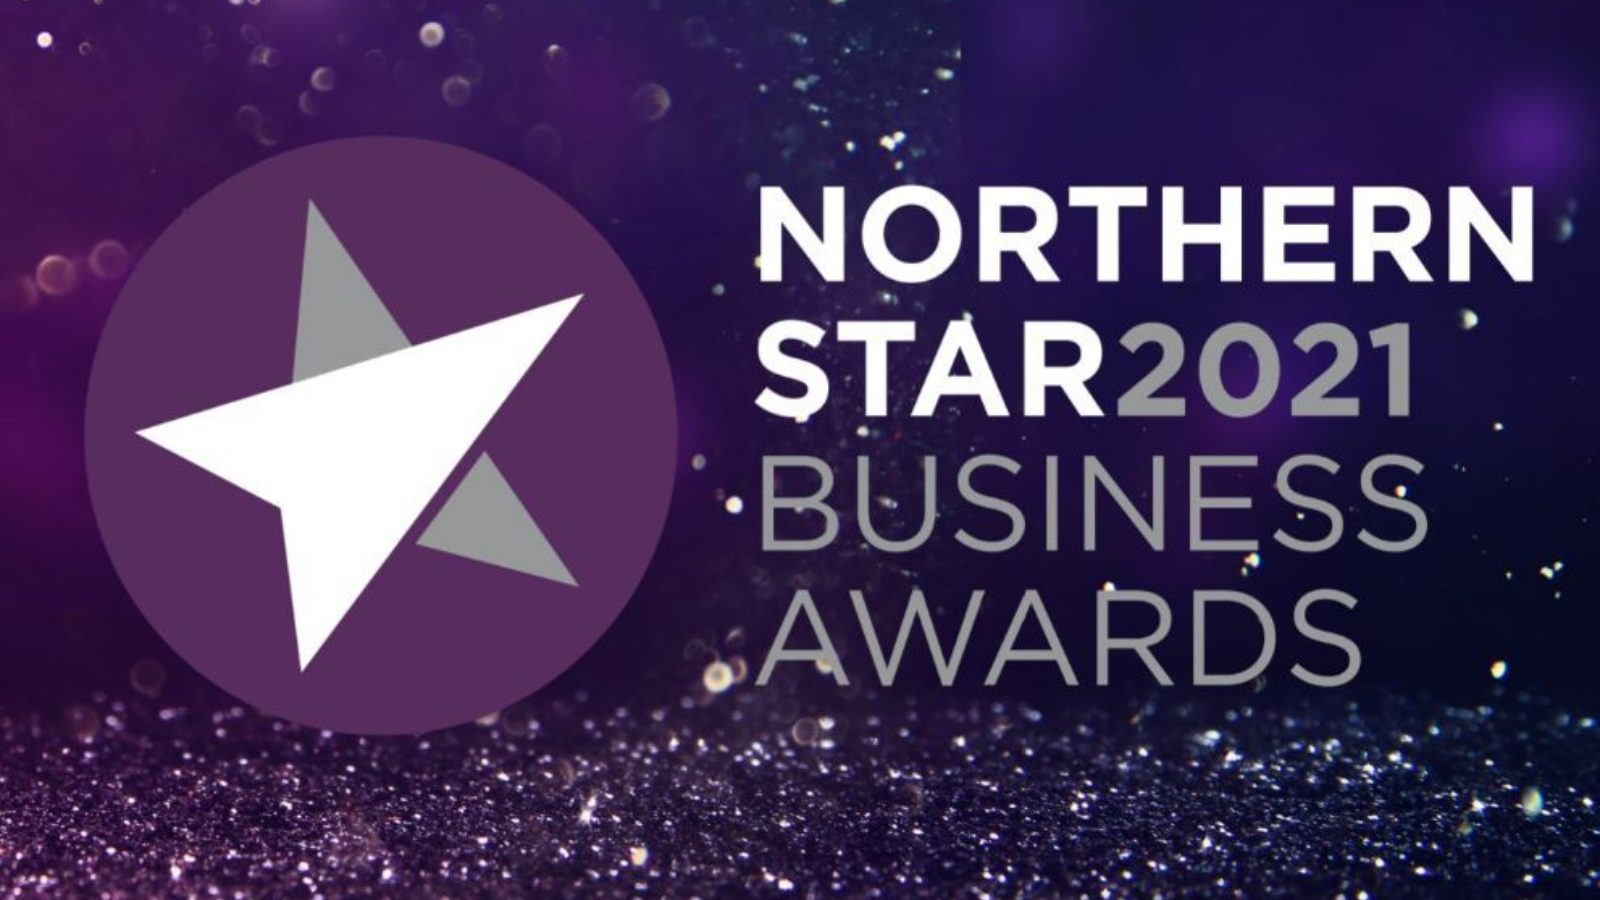 Network with leaders and influencers from across the North-east business community by securing your table at the 2021 Awards black tie event